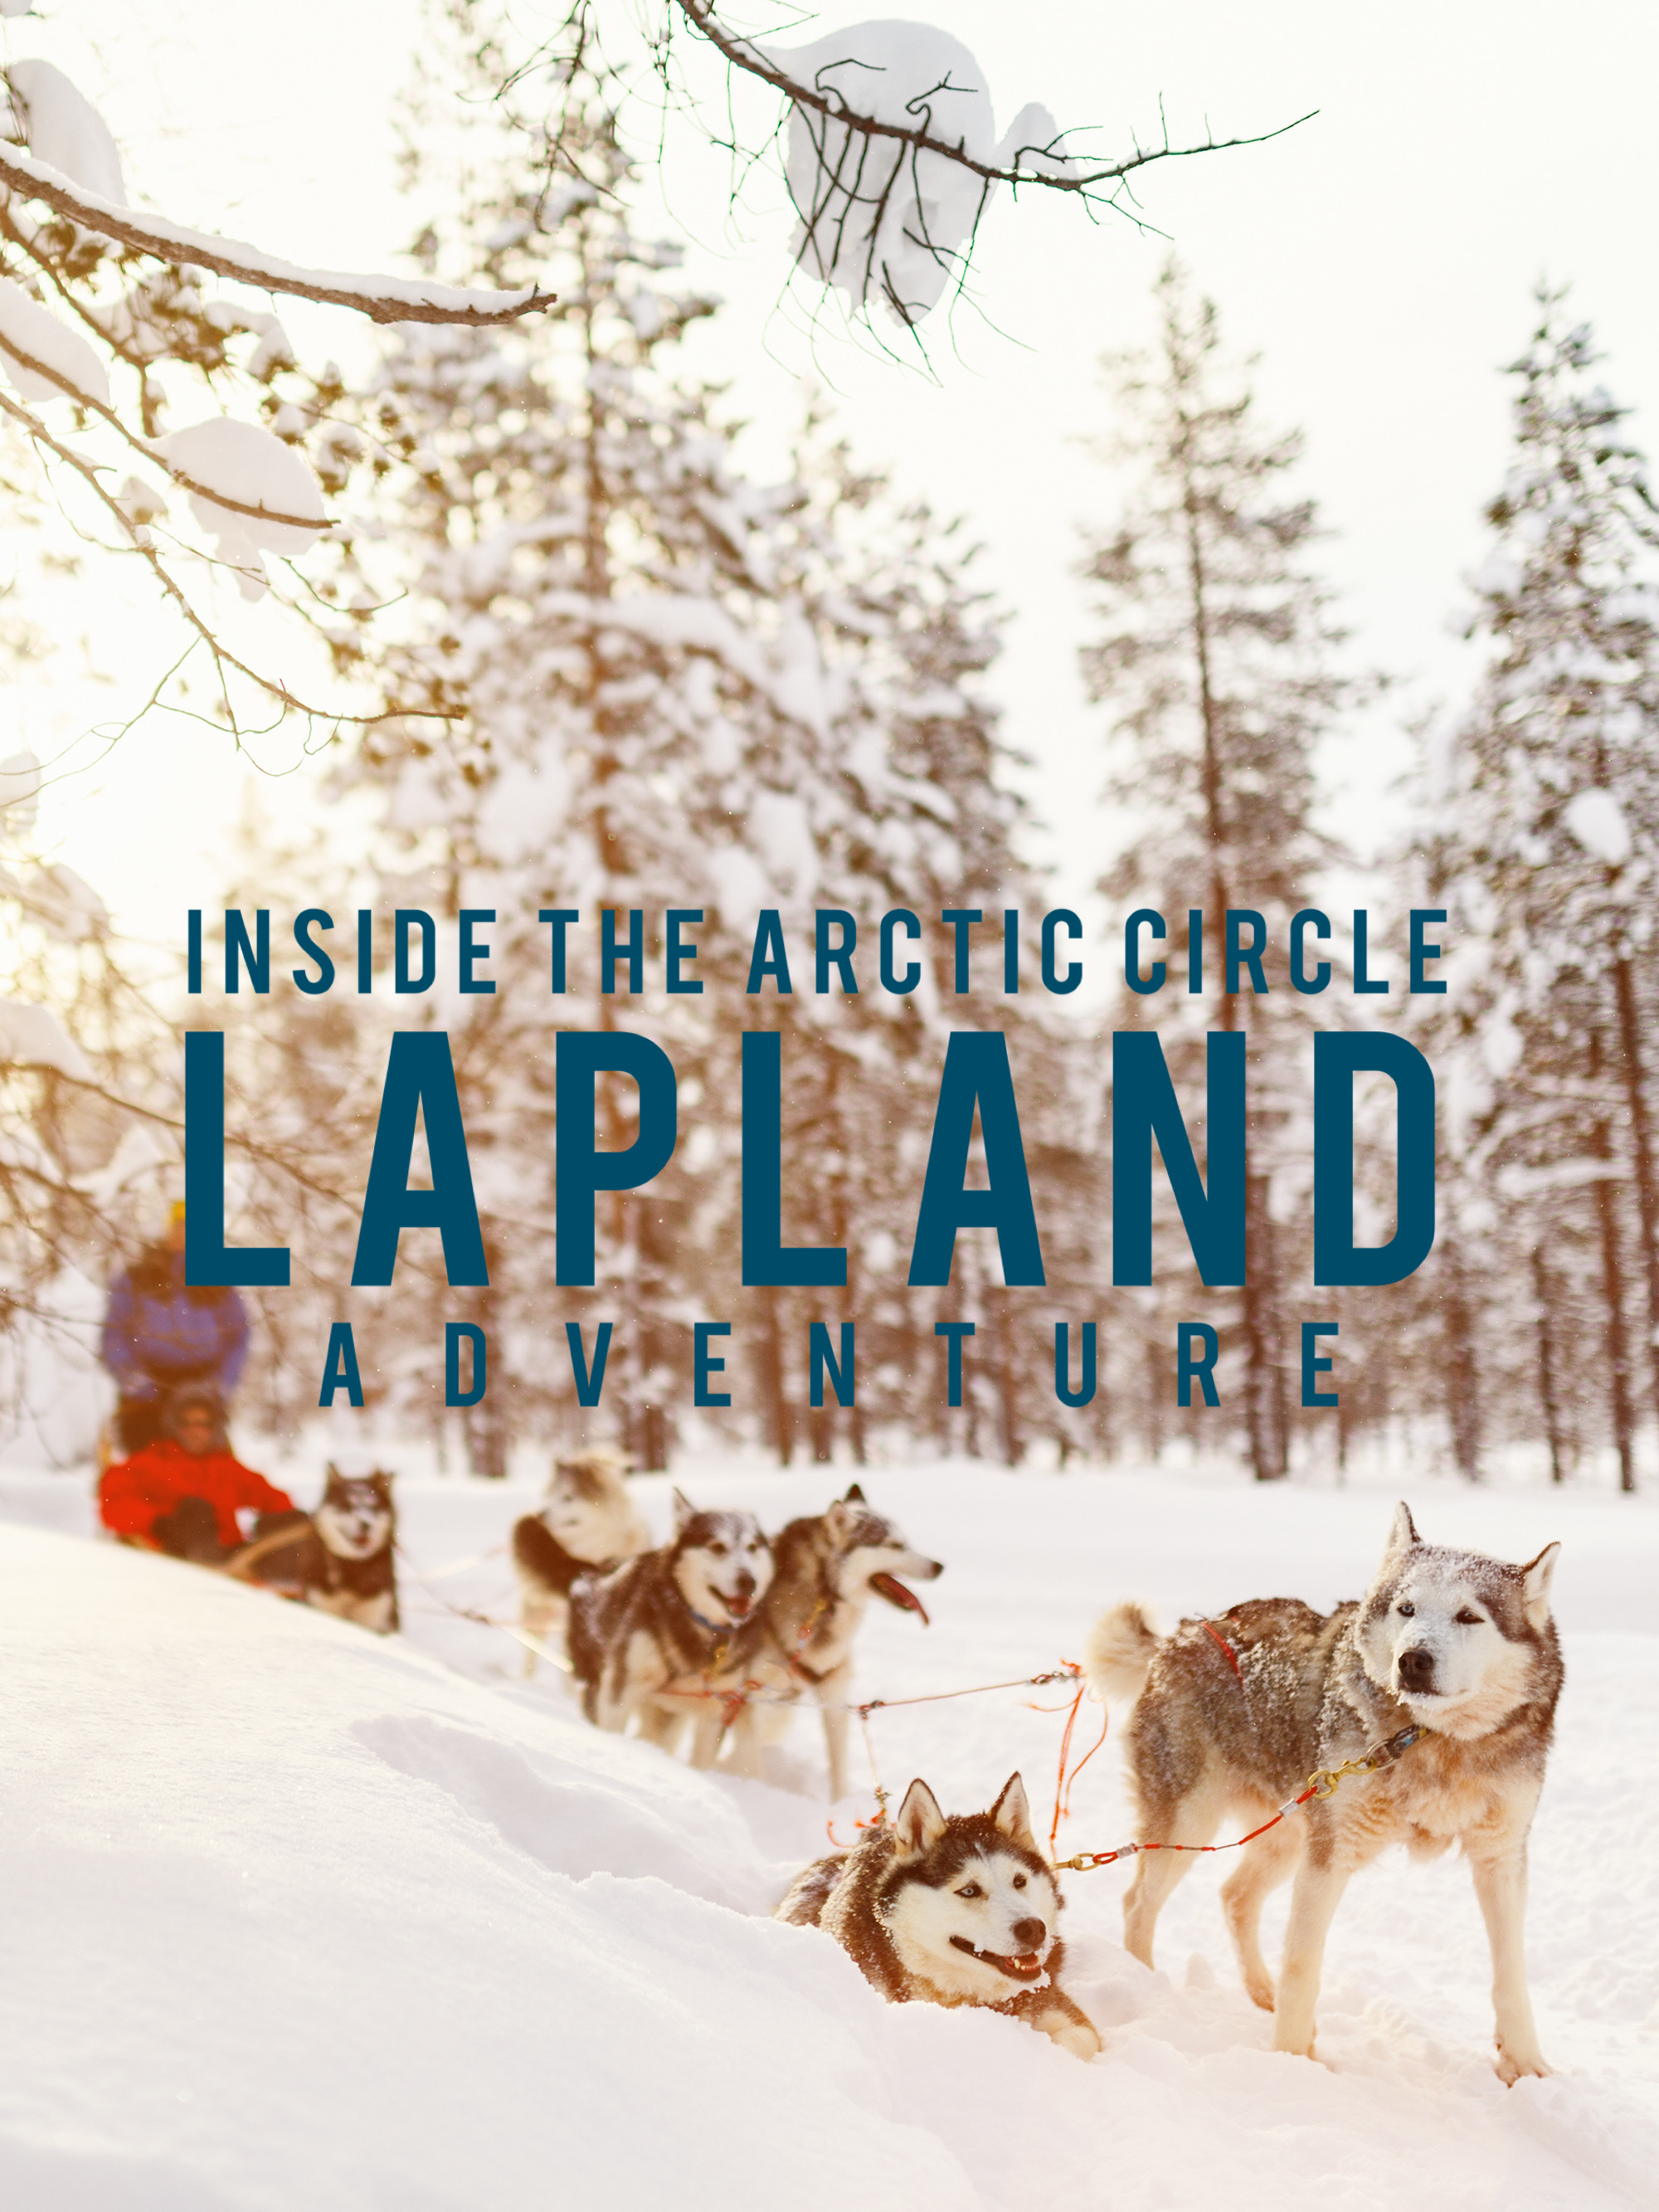 Inside the Arctic Circle: The Lapland Adventures